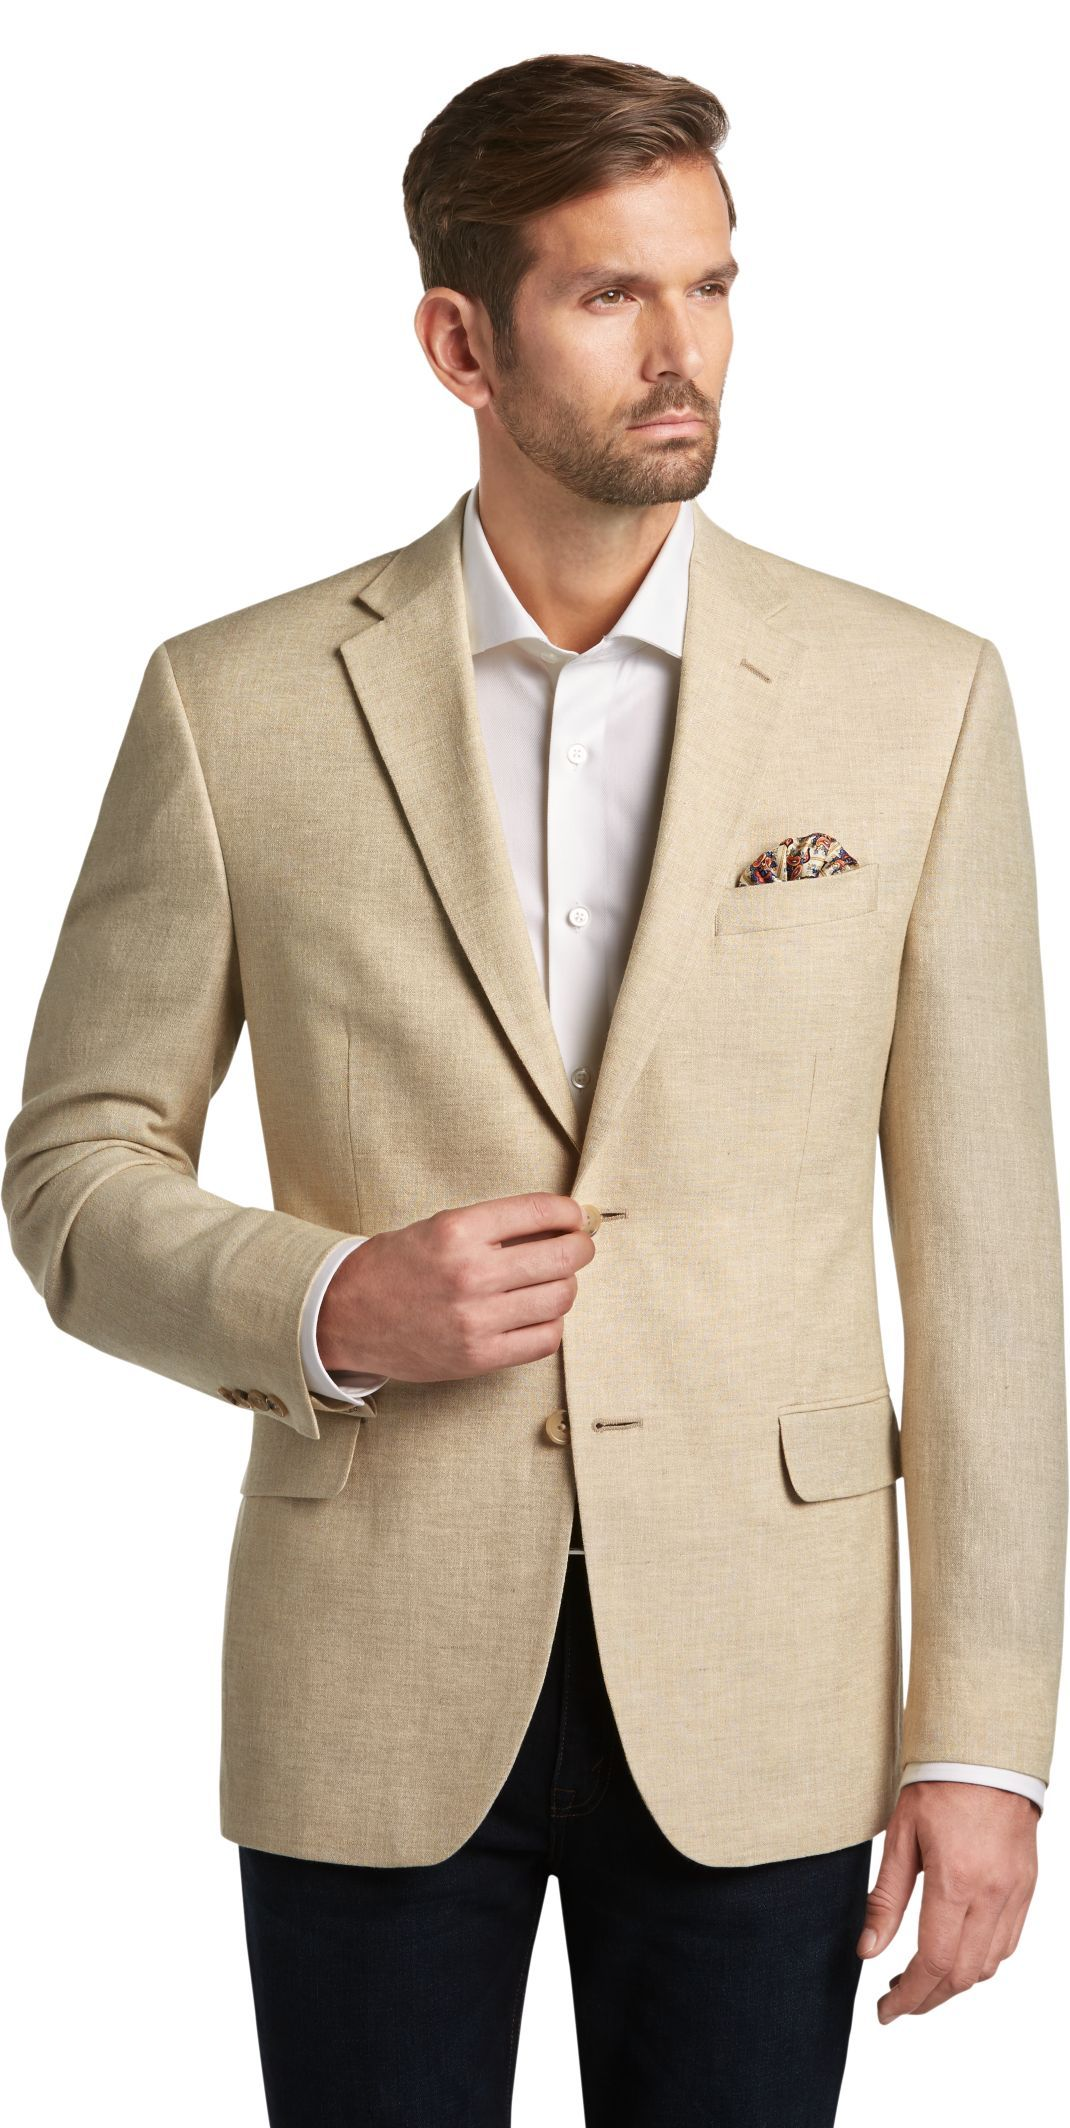 6752c9736 Executive Collection Tropical Blend Traditional Fit Woven Sportcoat  CLEARANCE